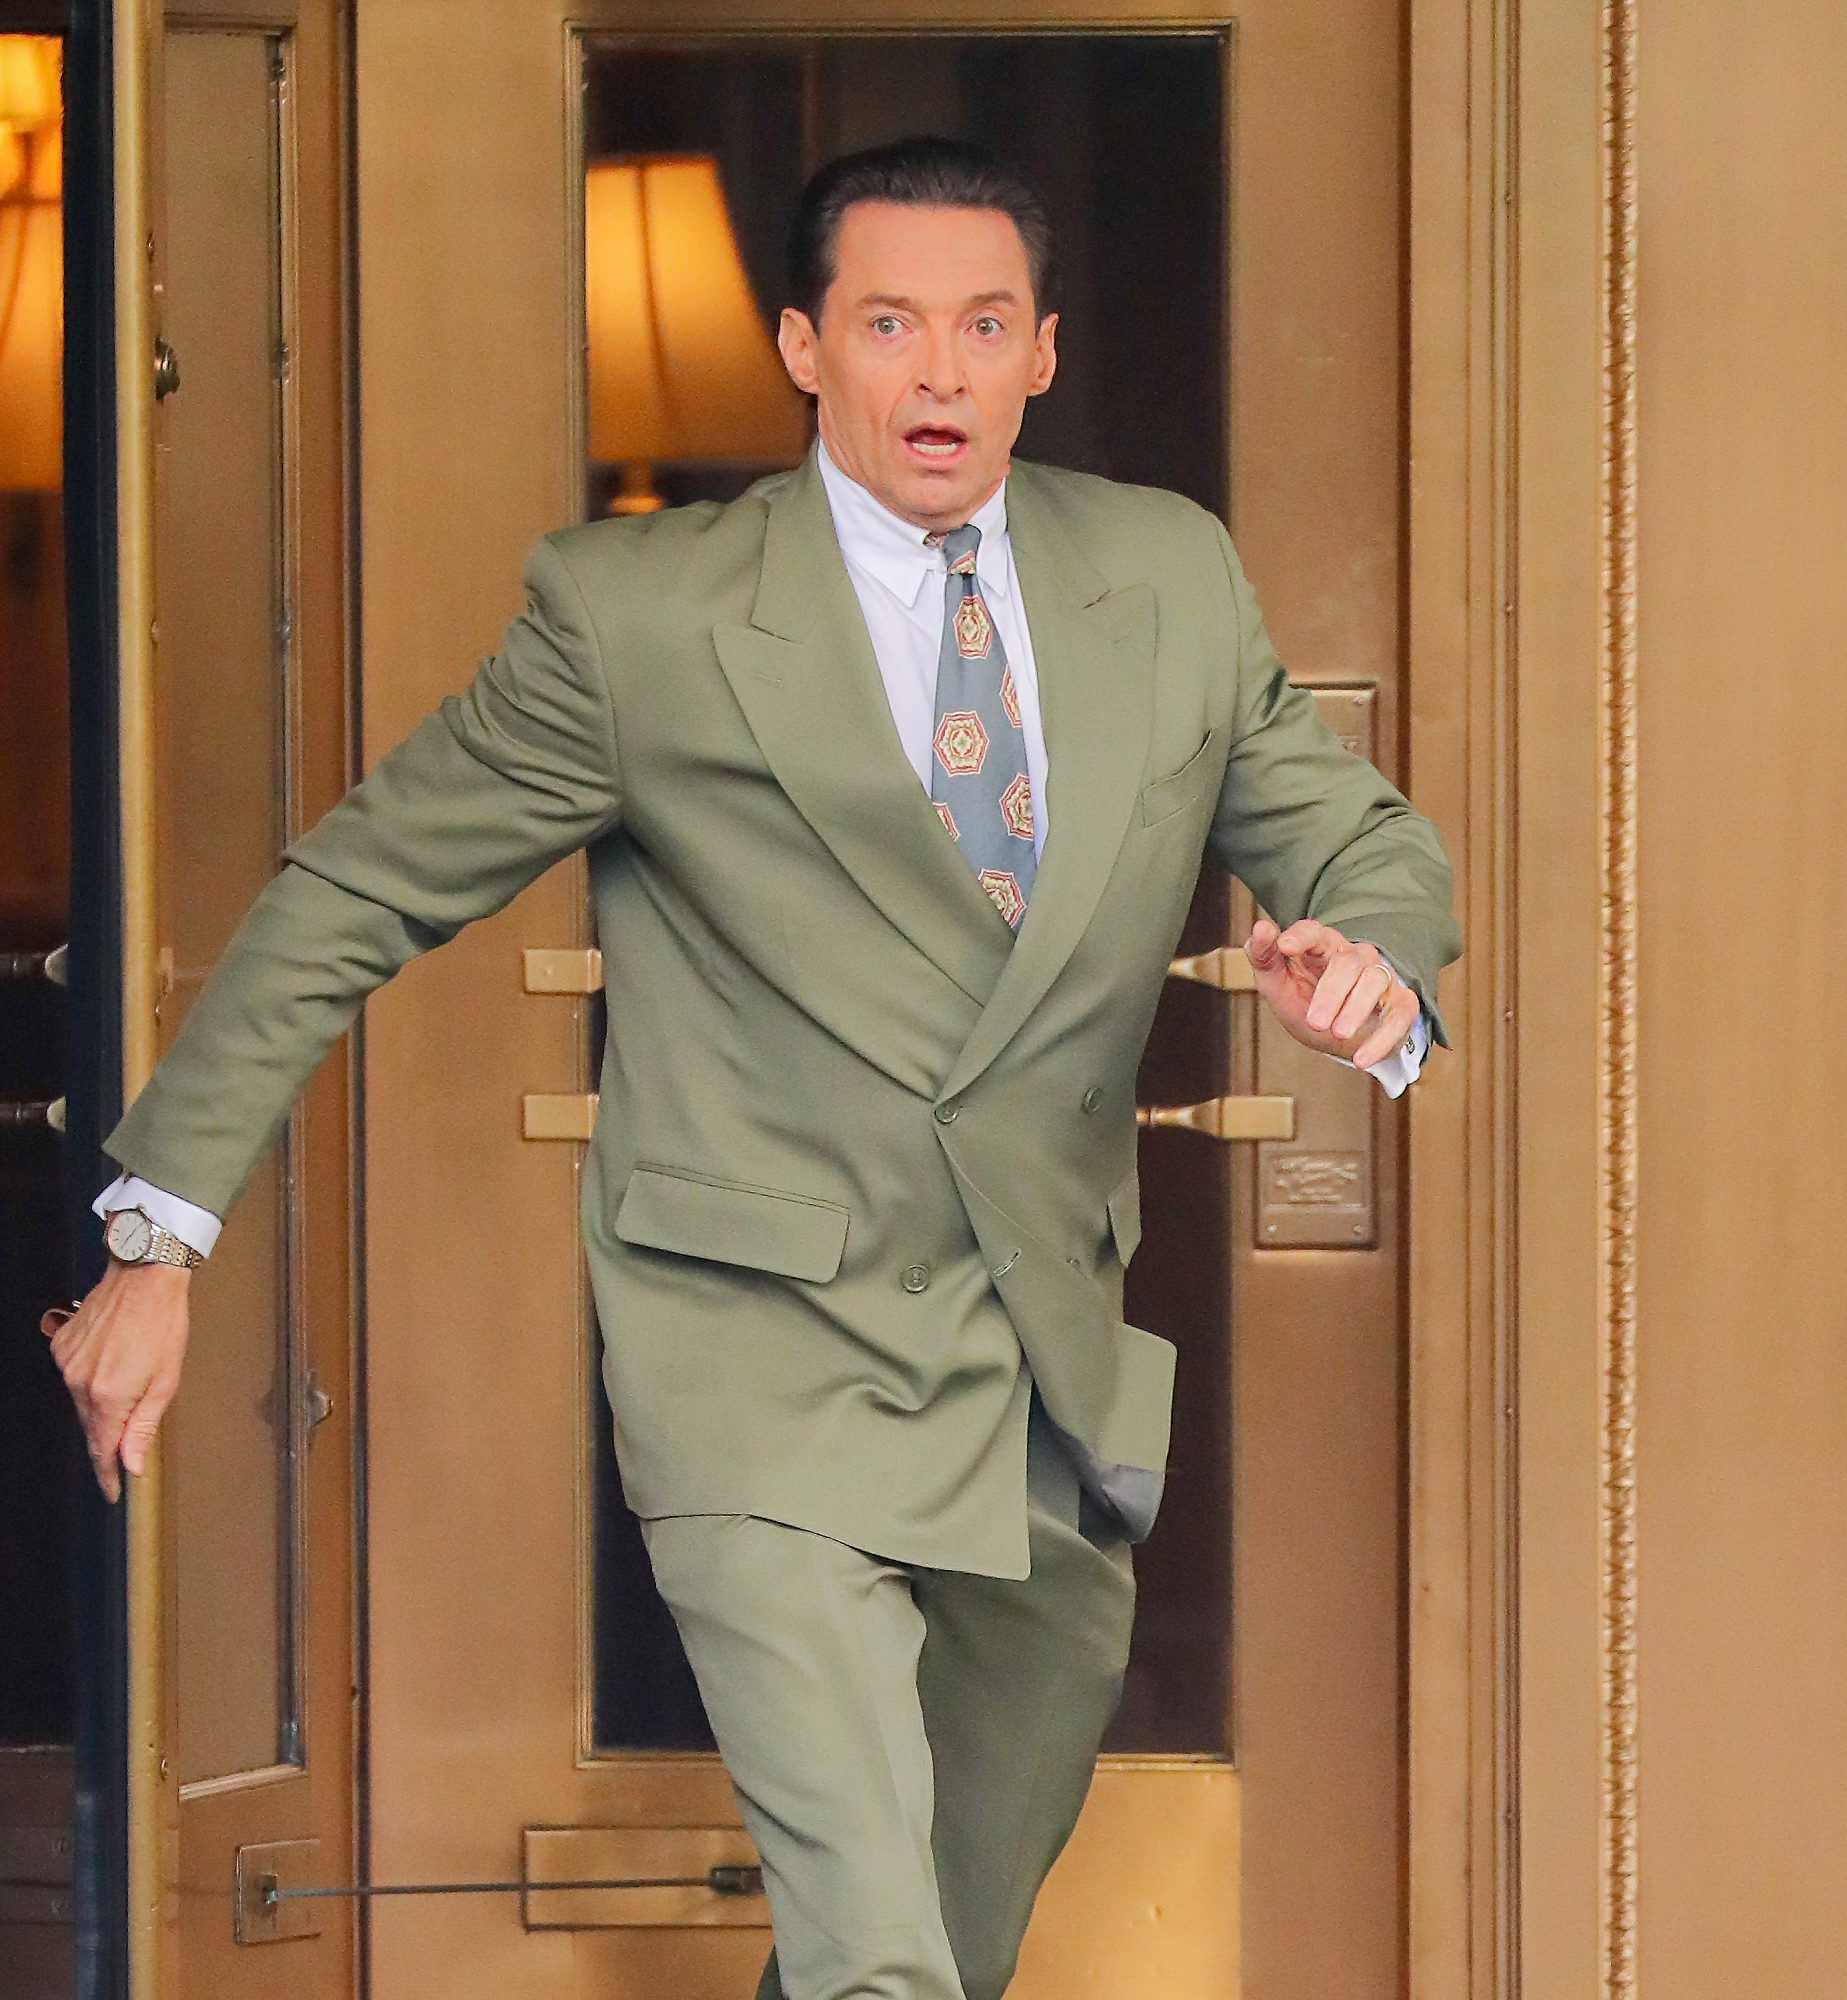 Hugh Jackman seen running out of a building door while filming 'Bad Education' in New York City